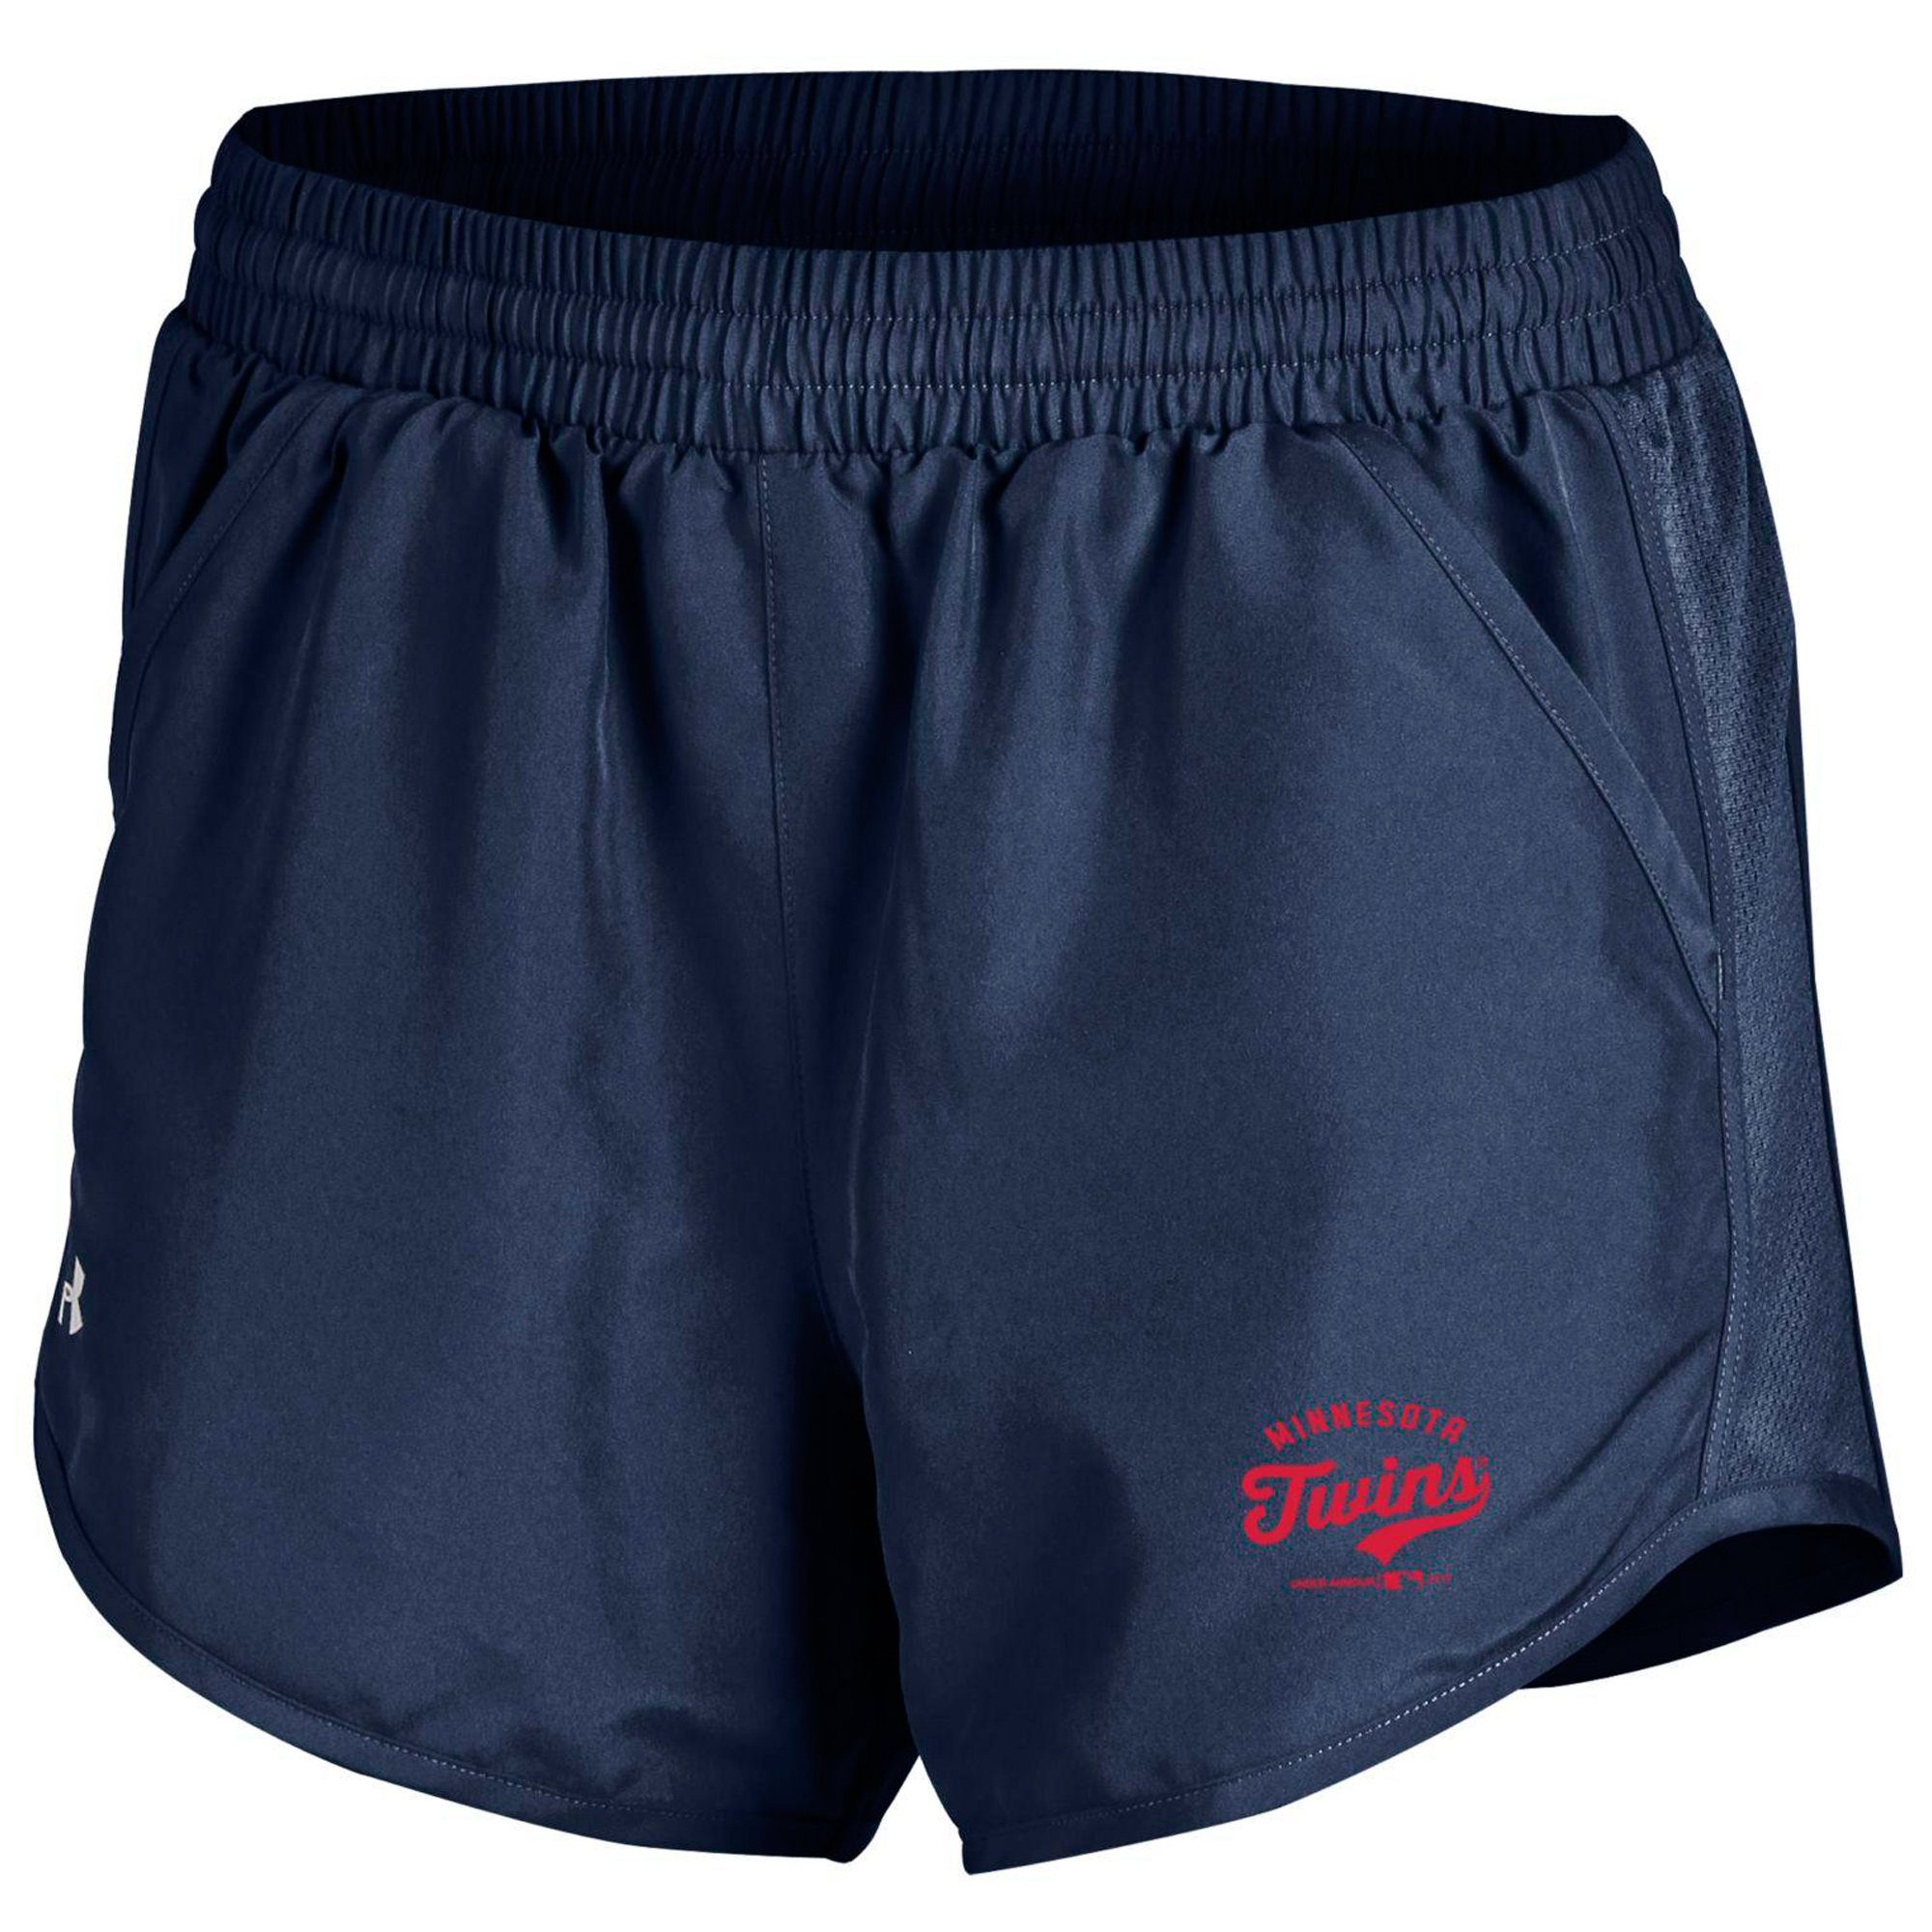 Minnesota Twins Under Armour Women's Fly By Running Shorts - Navy